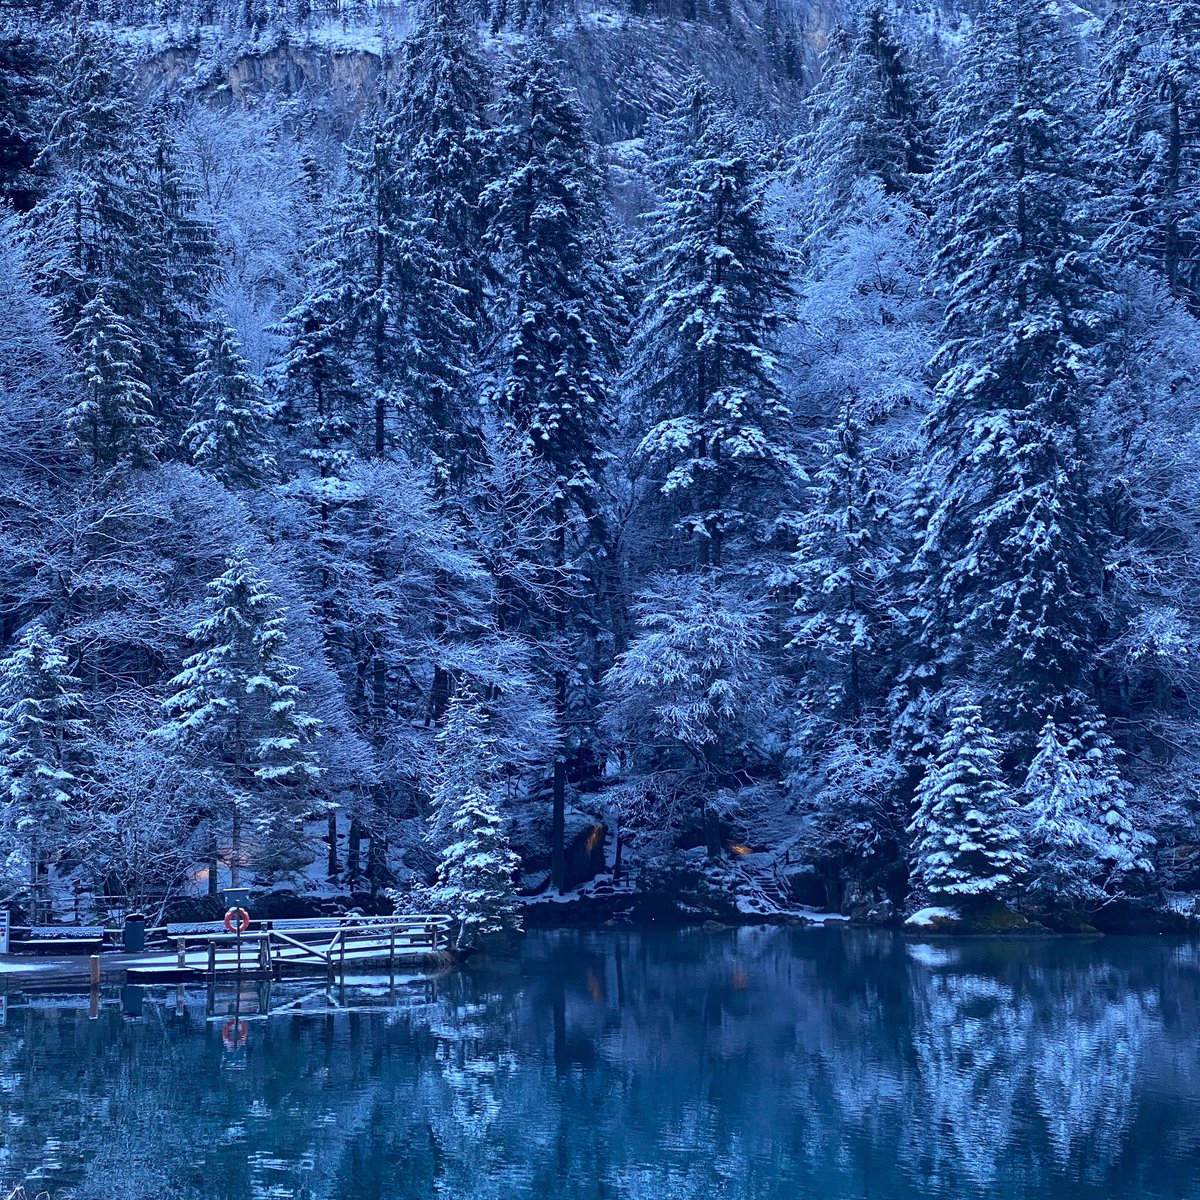 A gorgeous Sunday lies ahead of us. What are your plans for today? #visitswitzerland #blausee #happyplace #winterdays #swisswinter #naturephotography #nofilter #picoftheday #lakelove #blueisthecolour #inlovewithswitzerland #meineberge #stunning #snow #winter #travelgram #sunday